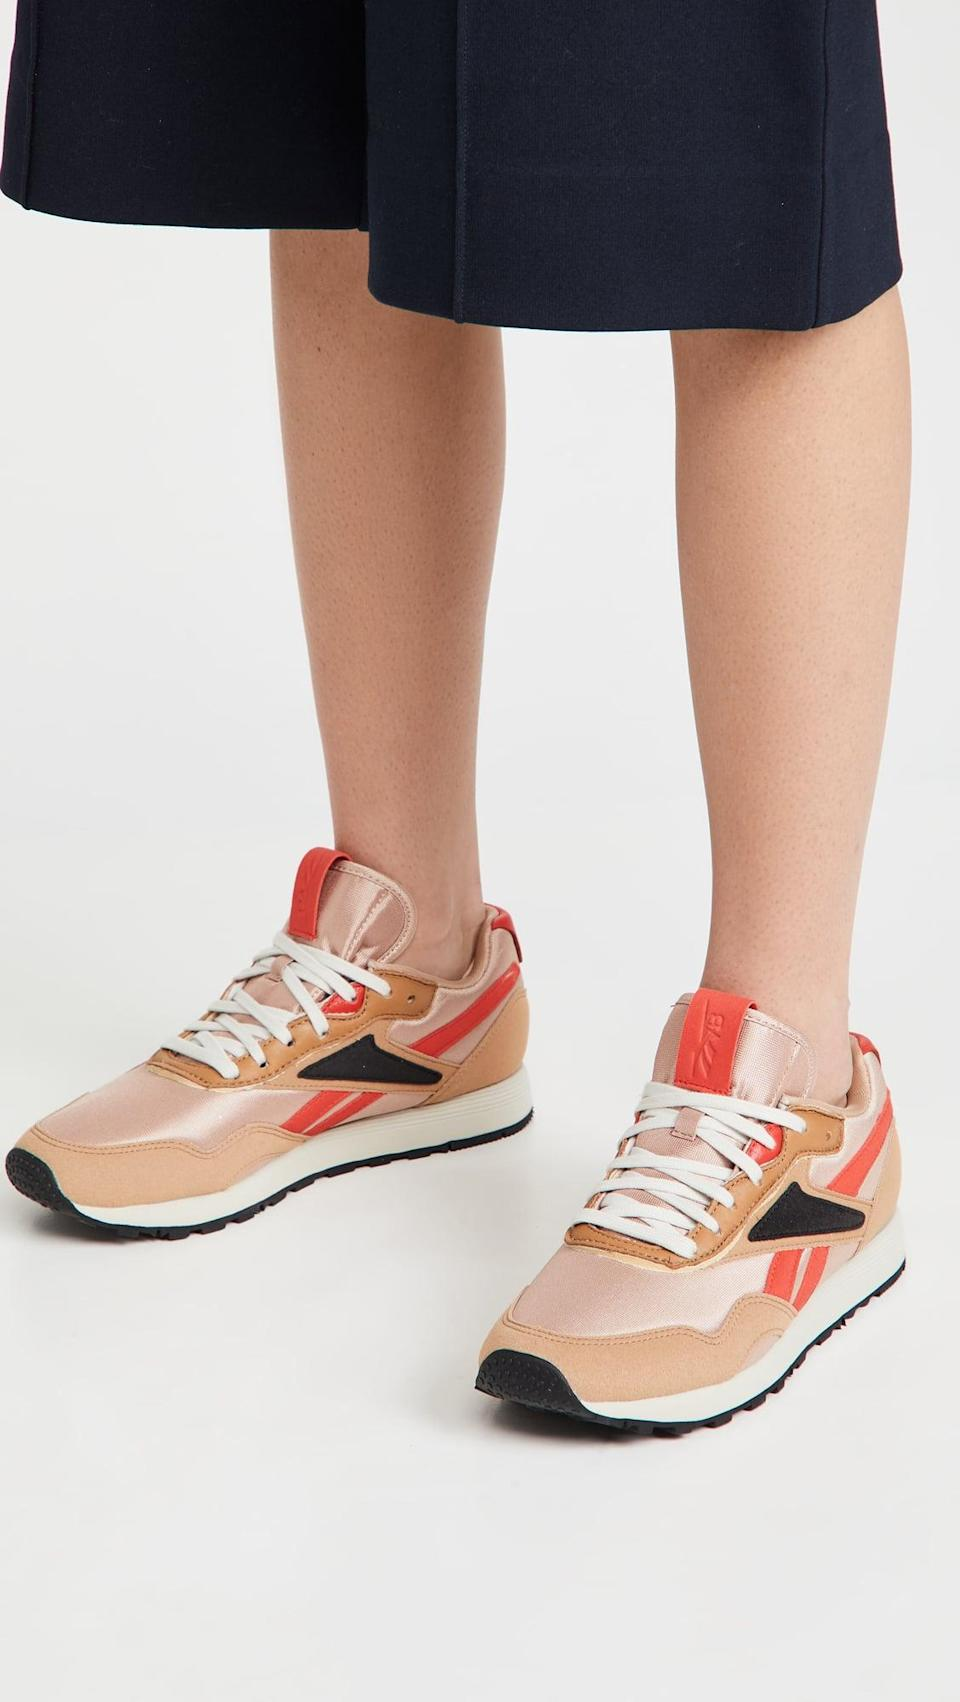 <p>The stripe motif and fun color scheme of these <span>Reebok x Victoria Beckham Rapide Vb Sneakers</span> ($150) make them a step above the rest. Designed for everyday wear, they feature a comfortable rubber sole, a lightweight midsole, and lace-up closure.</p>